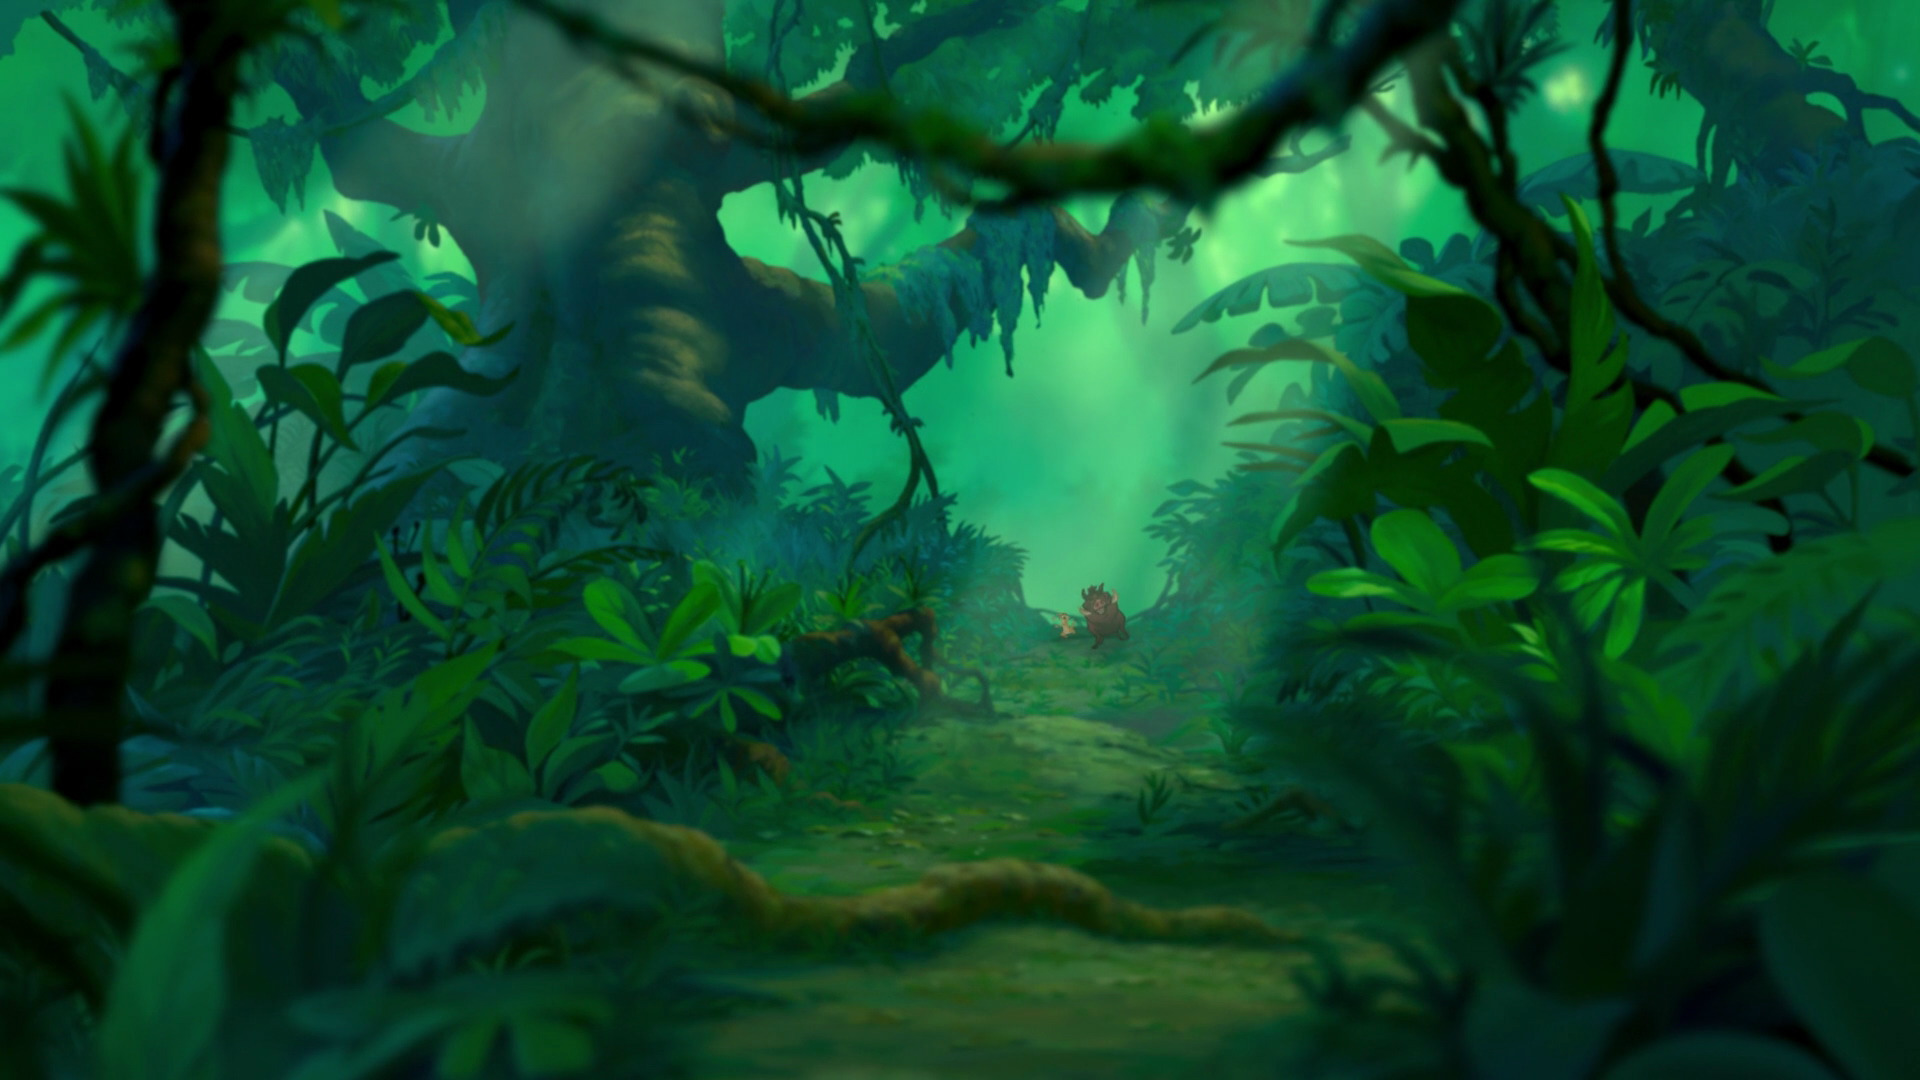 Inner_Jungle.png (PNG Image, 1920 × 1080 pixels) - Scaled (67 - Dschungel Hintergrund PNG